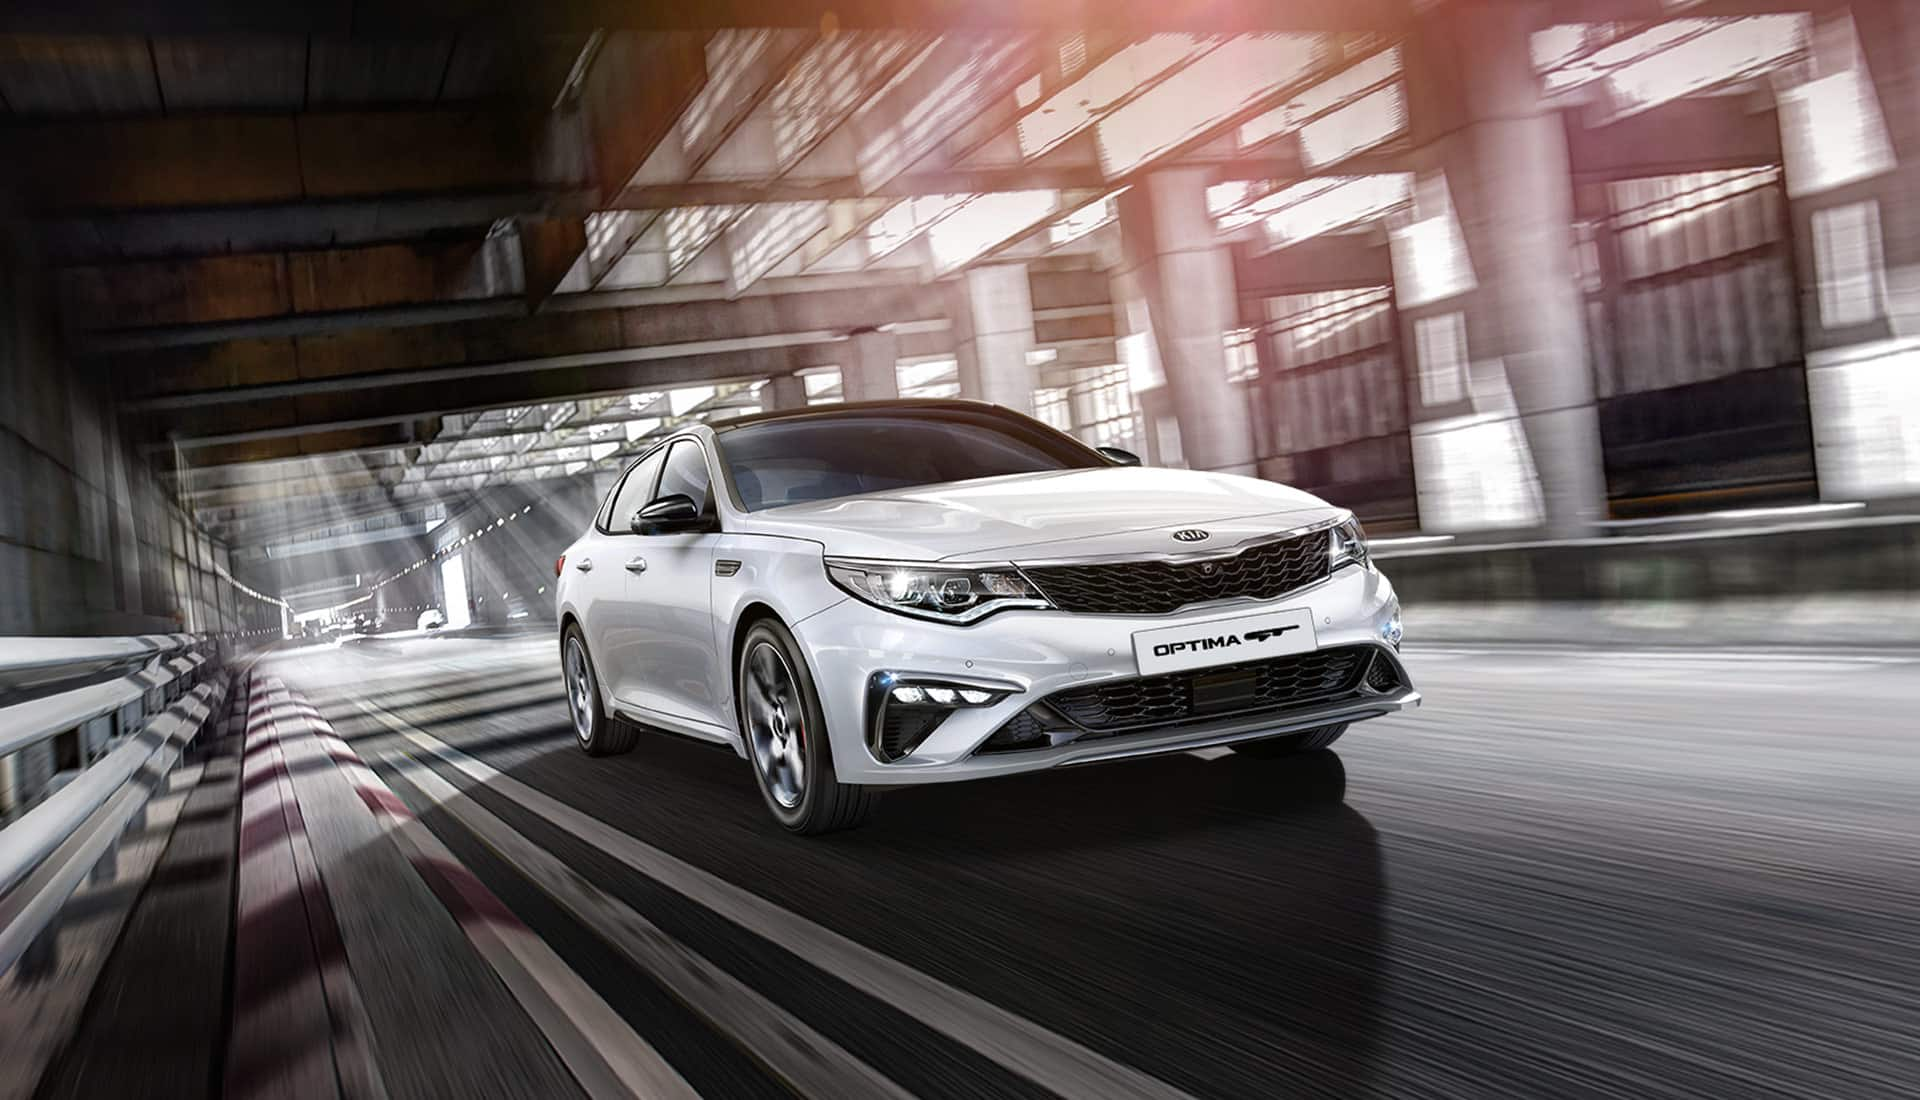 Der Kia Optima GT